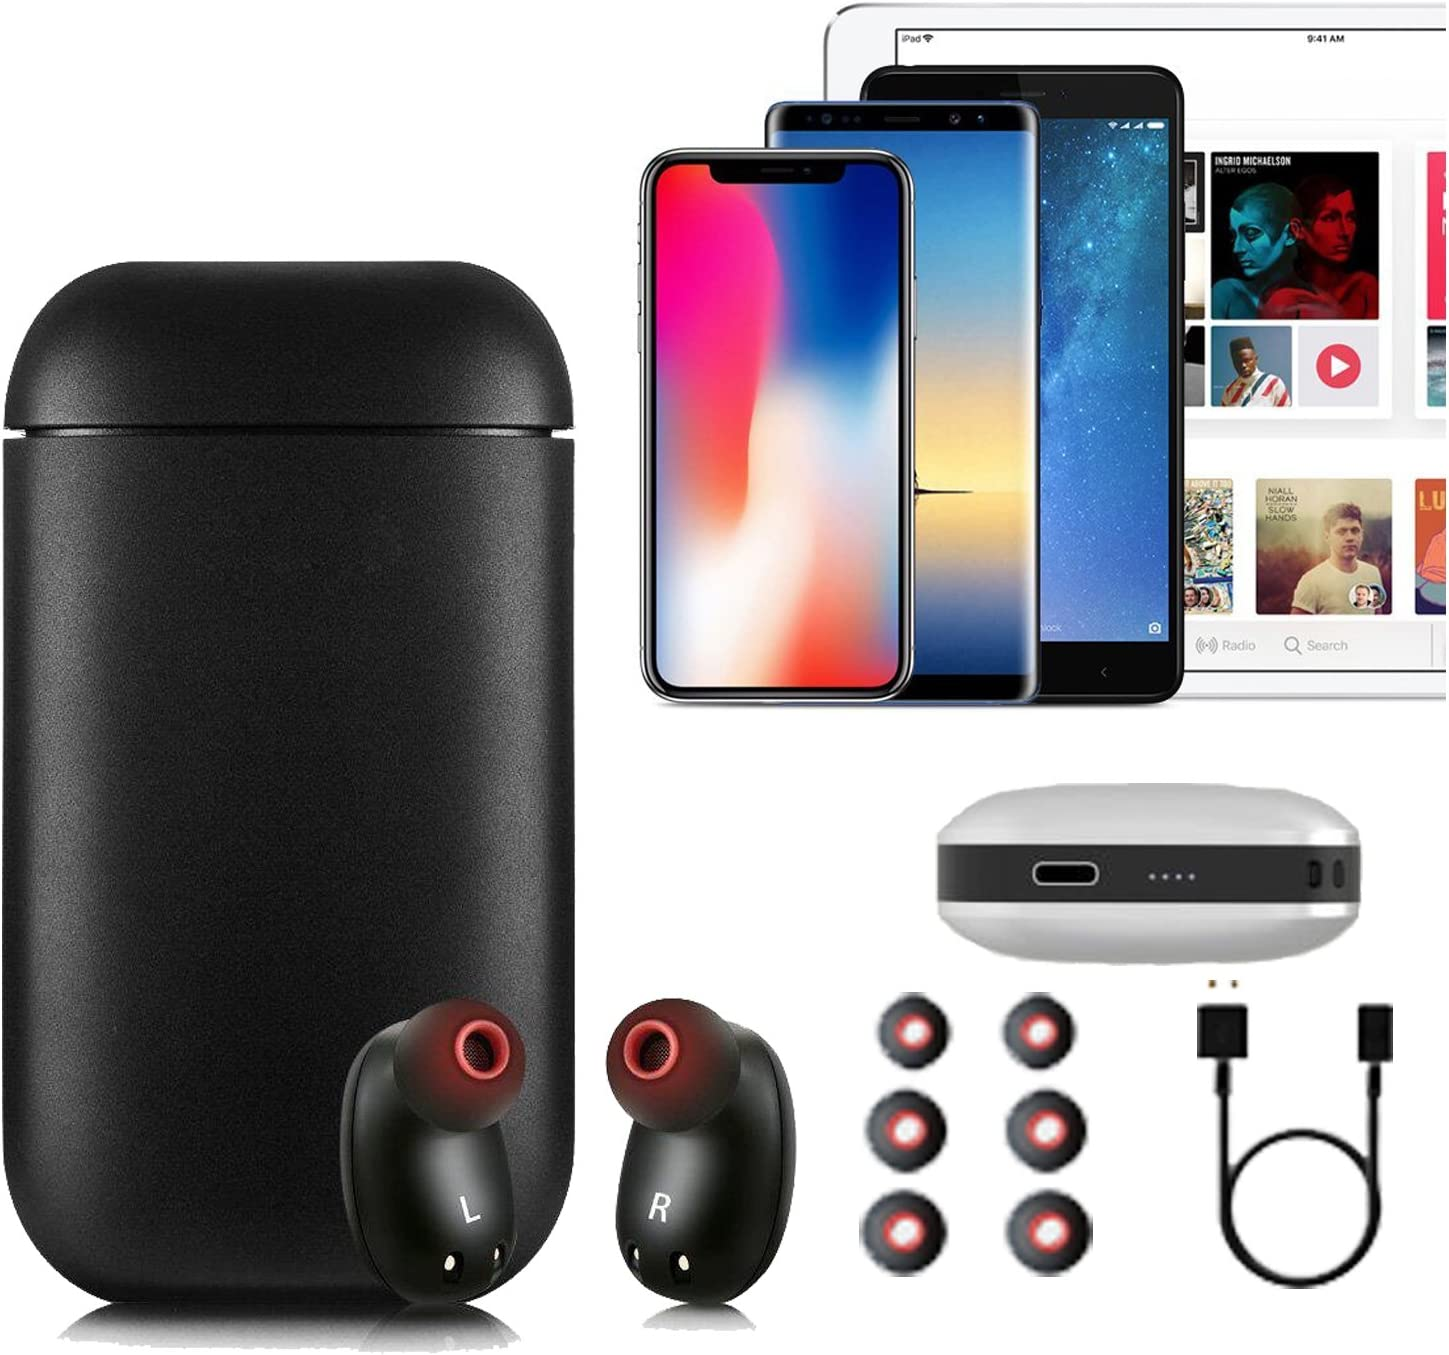 Wireless Earbuds, 2018 Upgraded Version Wireless Headphones Bluetooth Earbuds Sports Headphones with Mic and Charging Case Can Also be Used as Power Bank for iPhone and Android Smart Phones Black